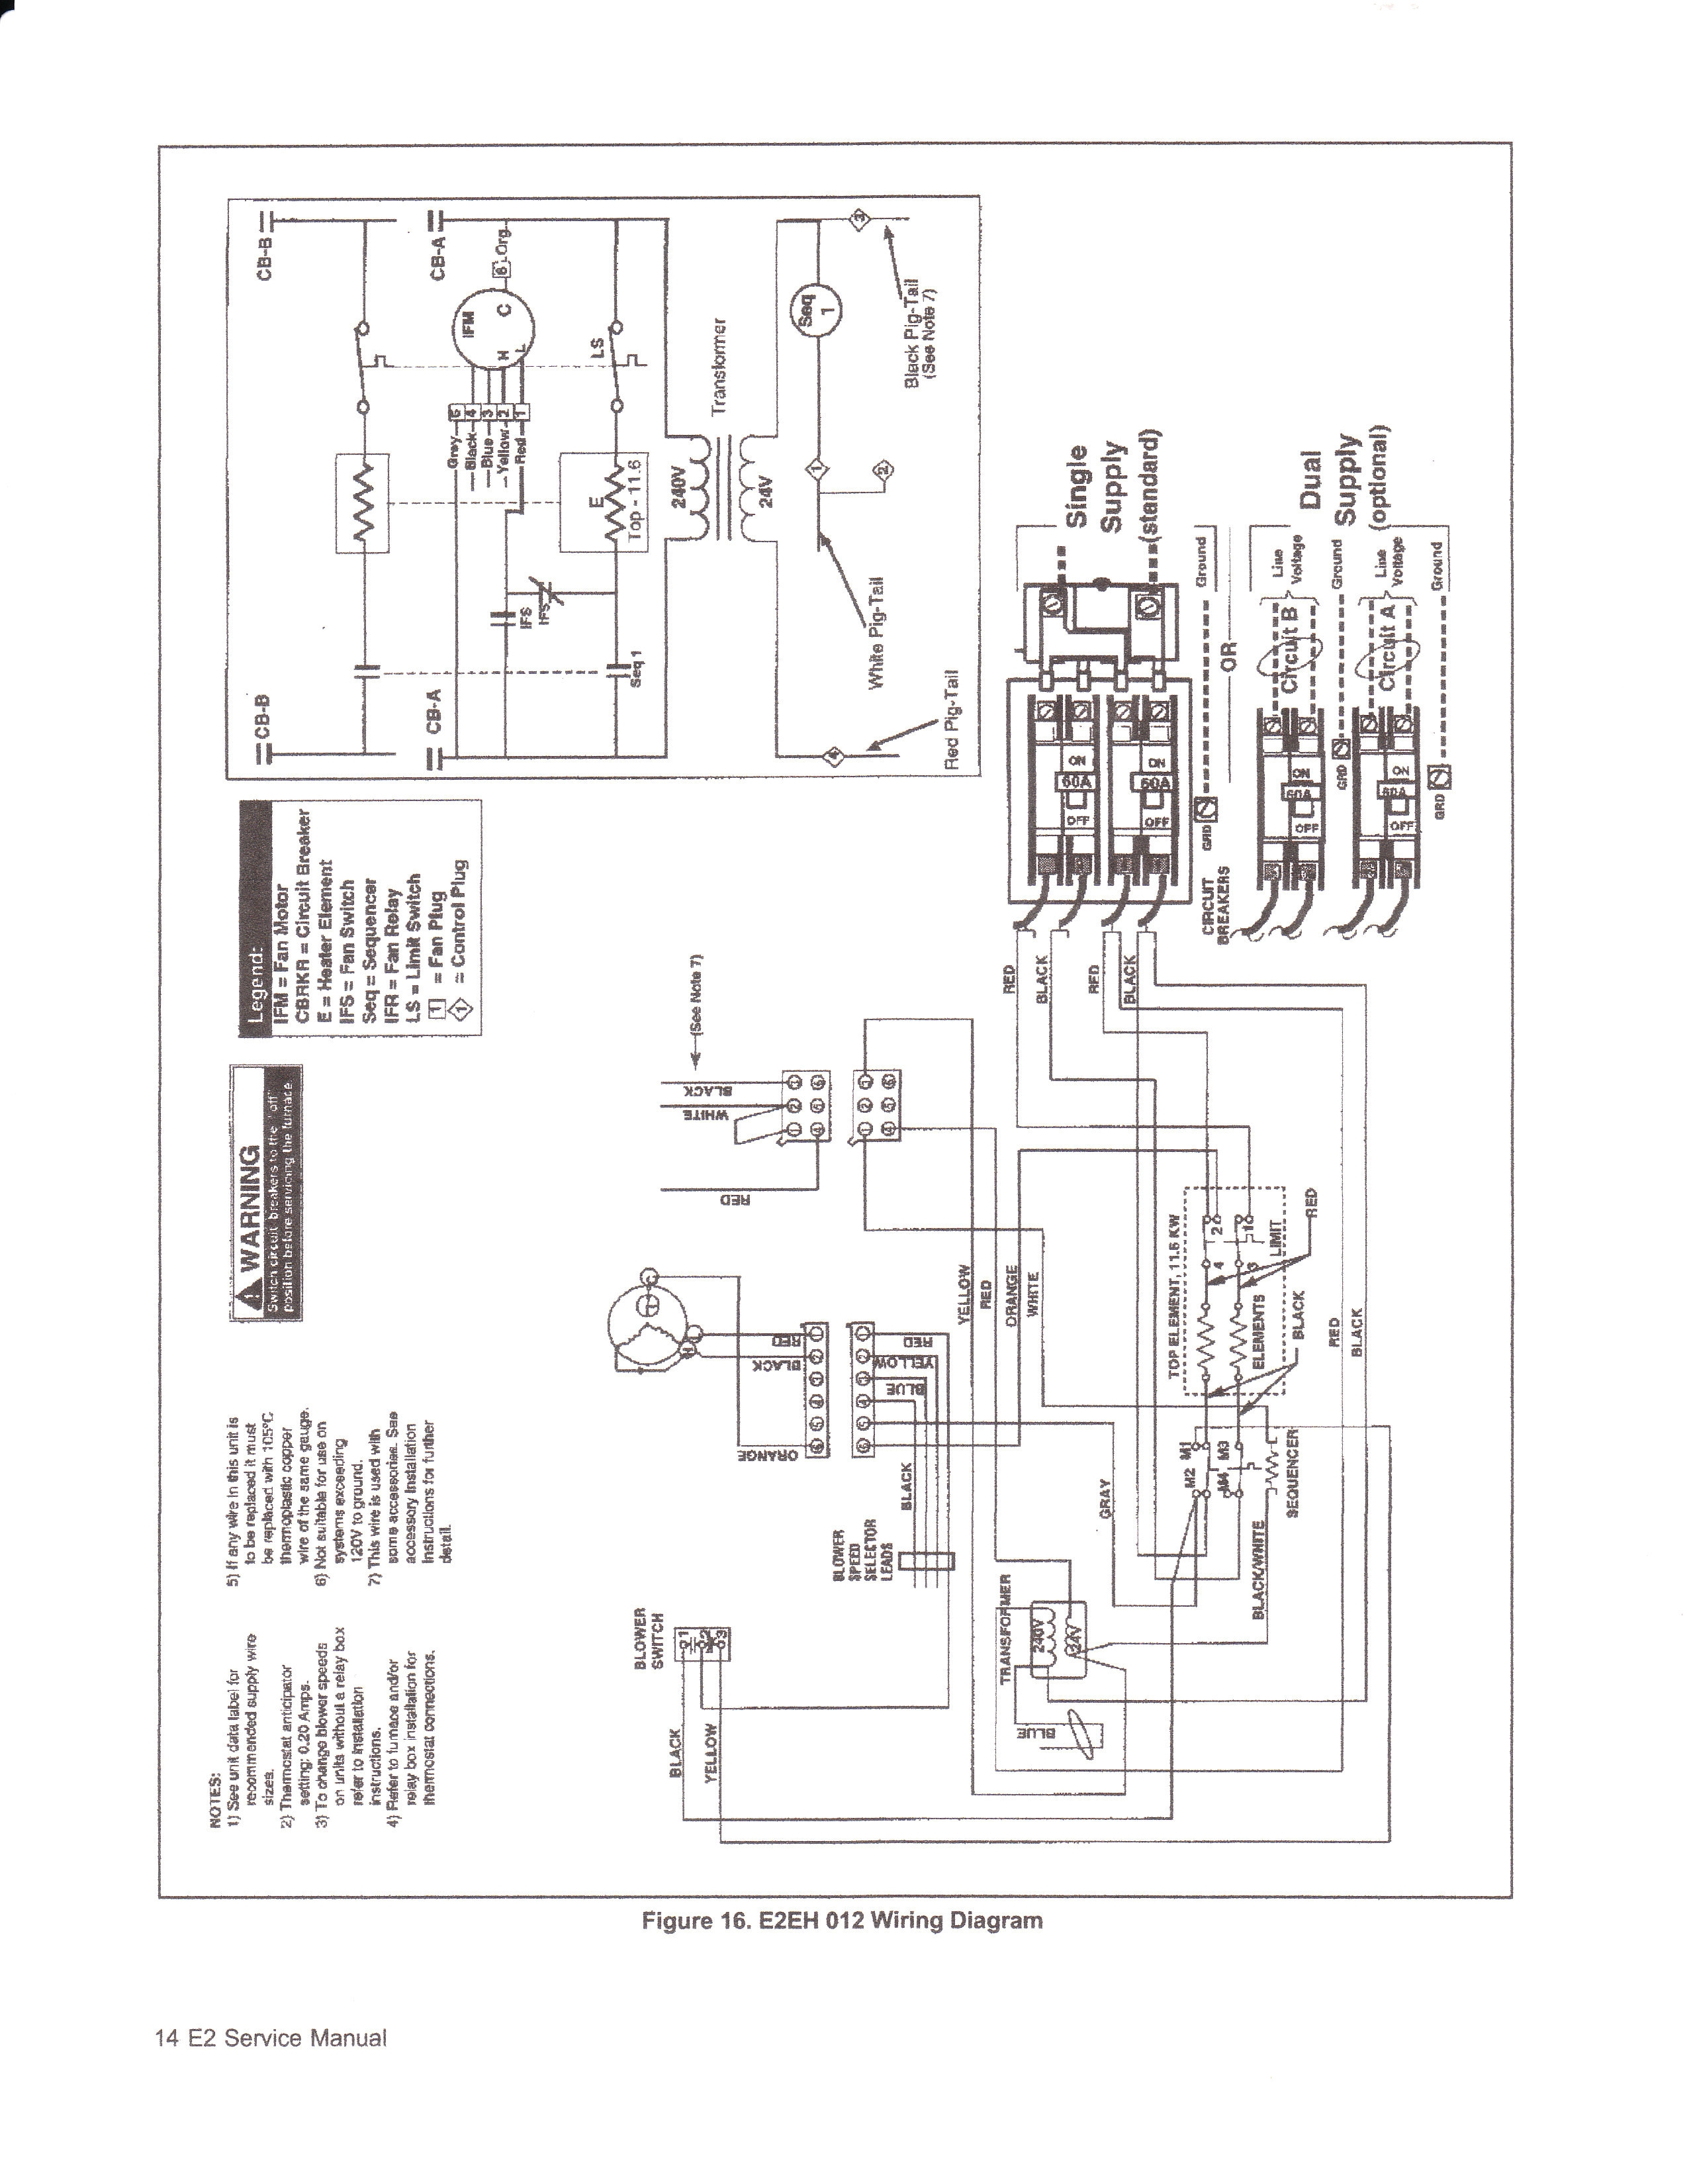 Mobile Home Thermostat Wiring Diagram